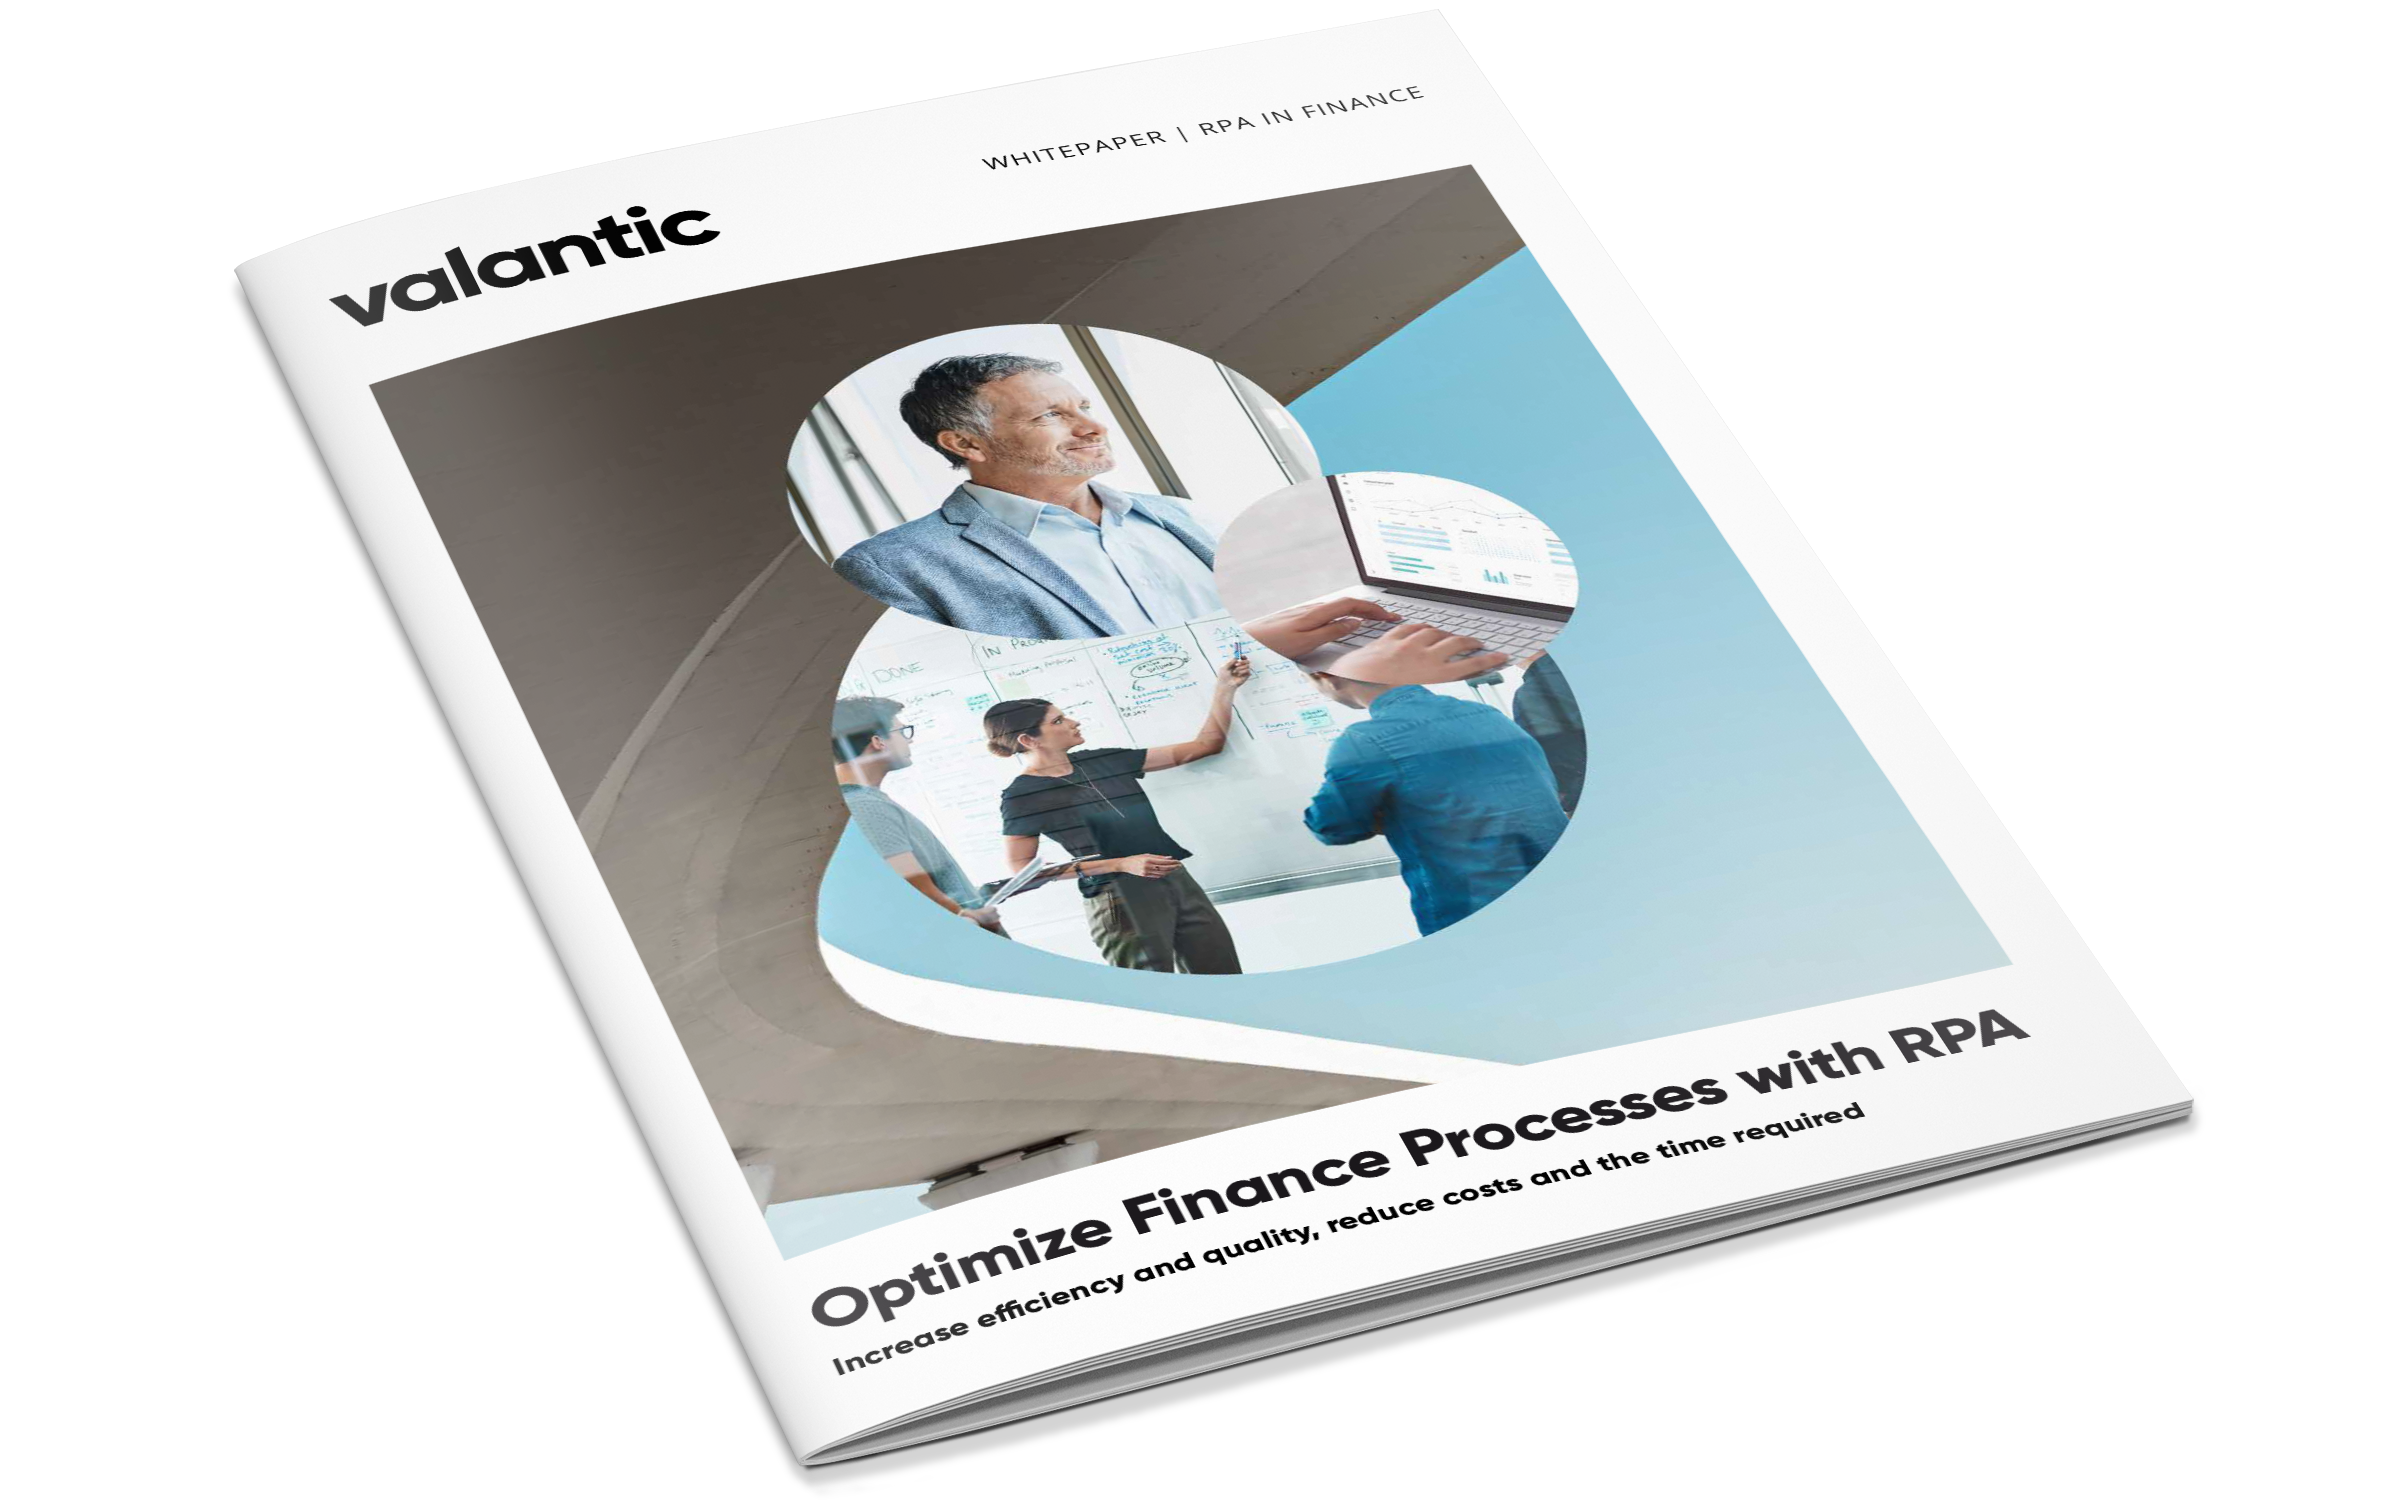 valantic-white-paper-optimize-finance-processes-with-rpa